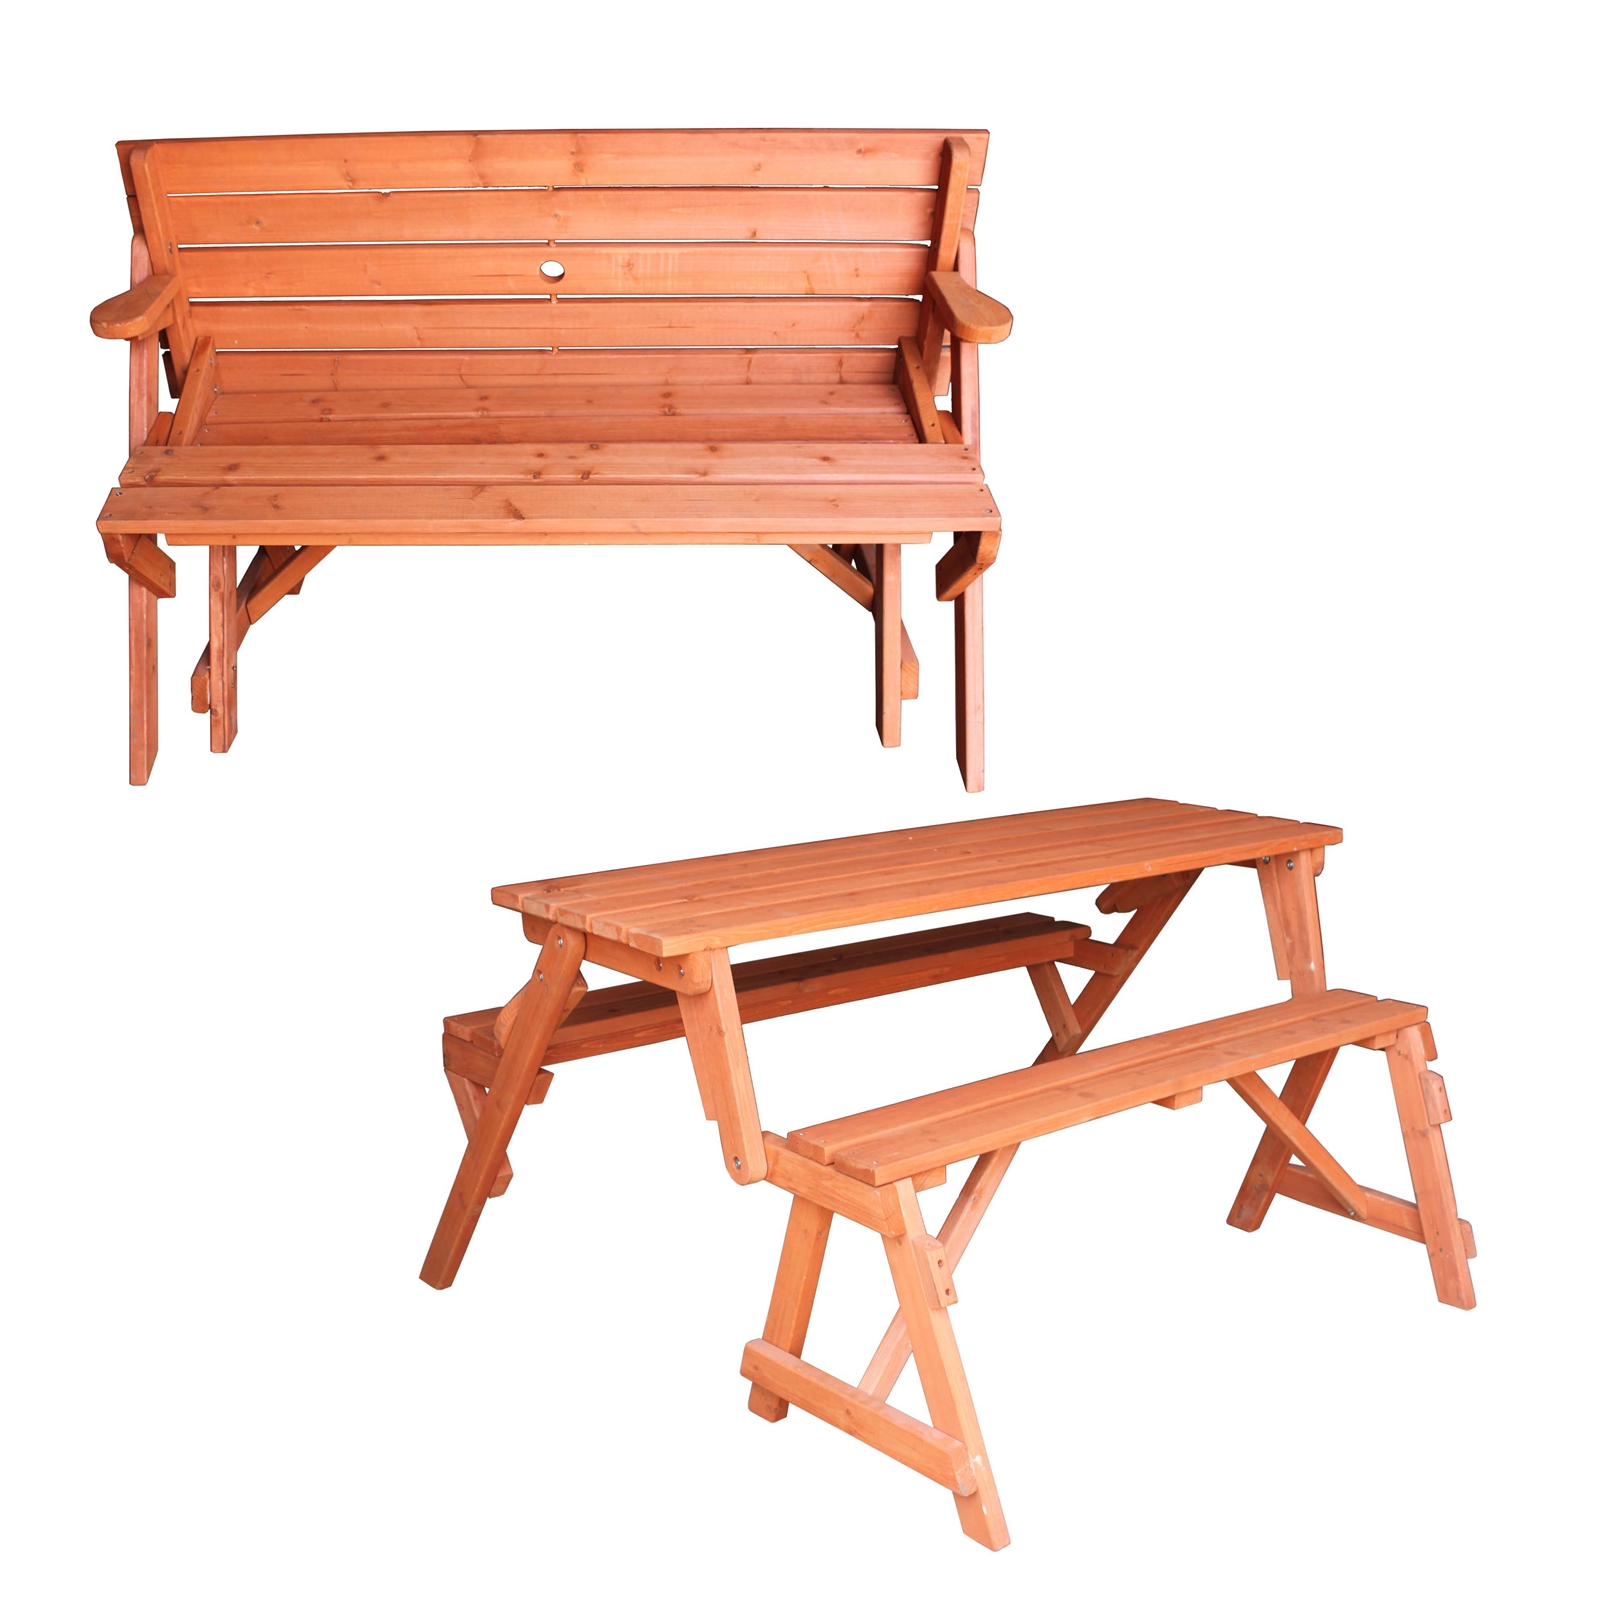 Wooden Folding Bench Picnic Garden Seat Table 2 In 1